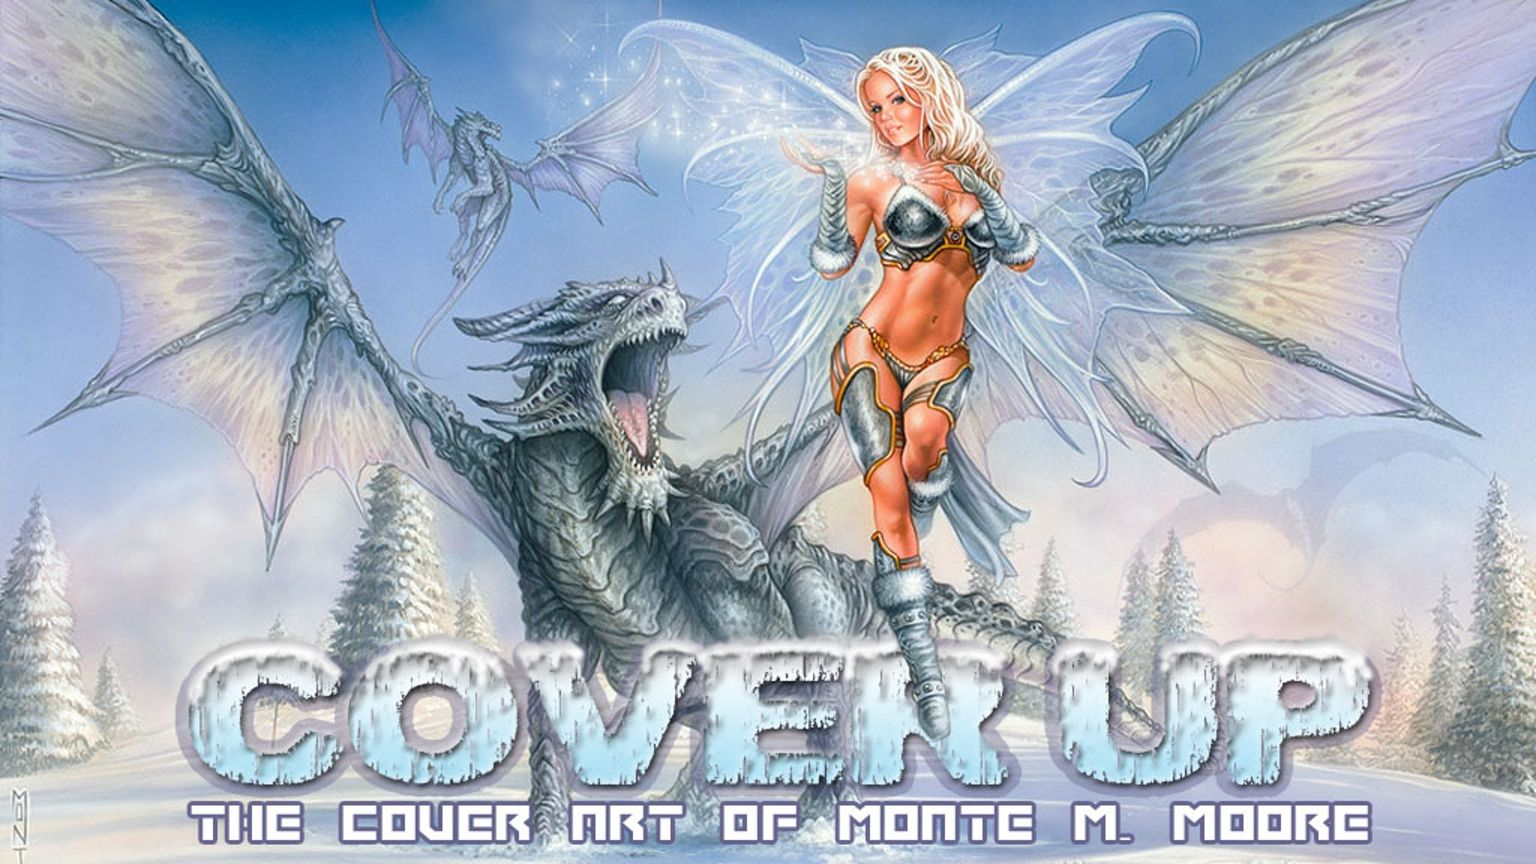 A Comprehensive Collection of Cover Art spanning the 20+ years of Monte's professional career in gaming, comics and sexy pin-up art!